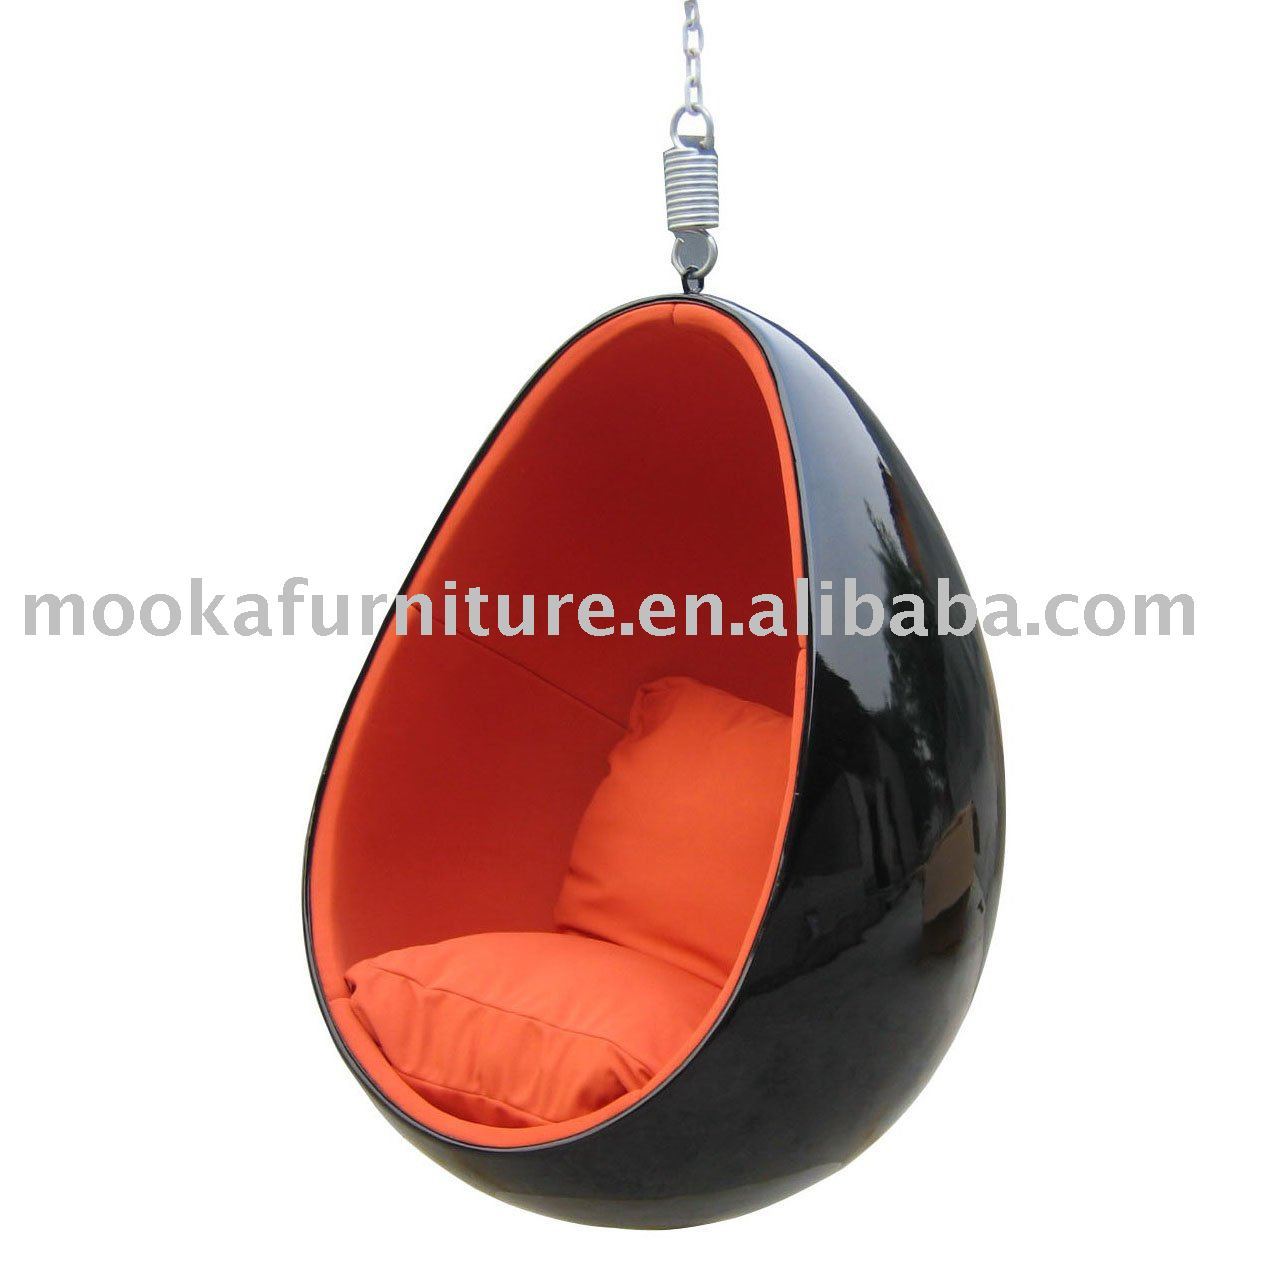 Best Hanging Egg Hanging Chair Shop, Top online shopping on Alibaba.